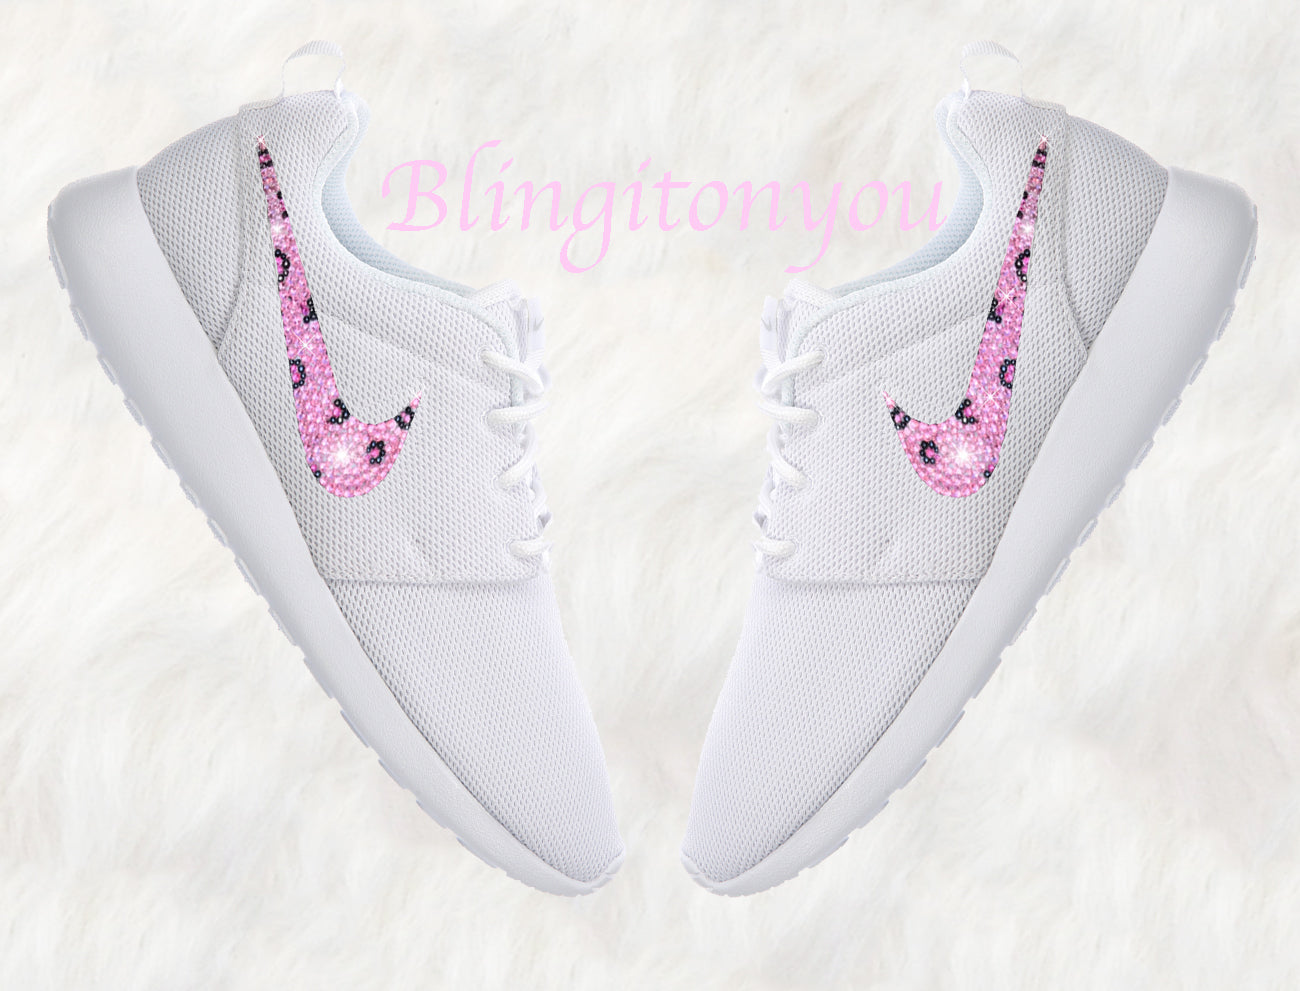 factory authentic 26033 383bc Swarovski Nike Roshe One Women's Shoes White Blinged Out With Leopard Pink  Swarovski - Swarovski Nike Shoes - Nike Bling Shoes